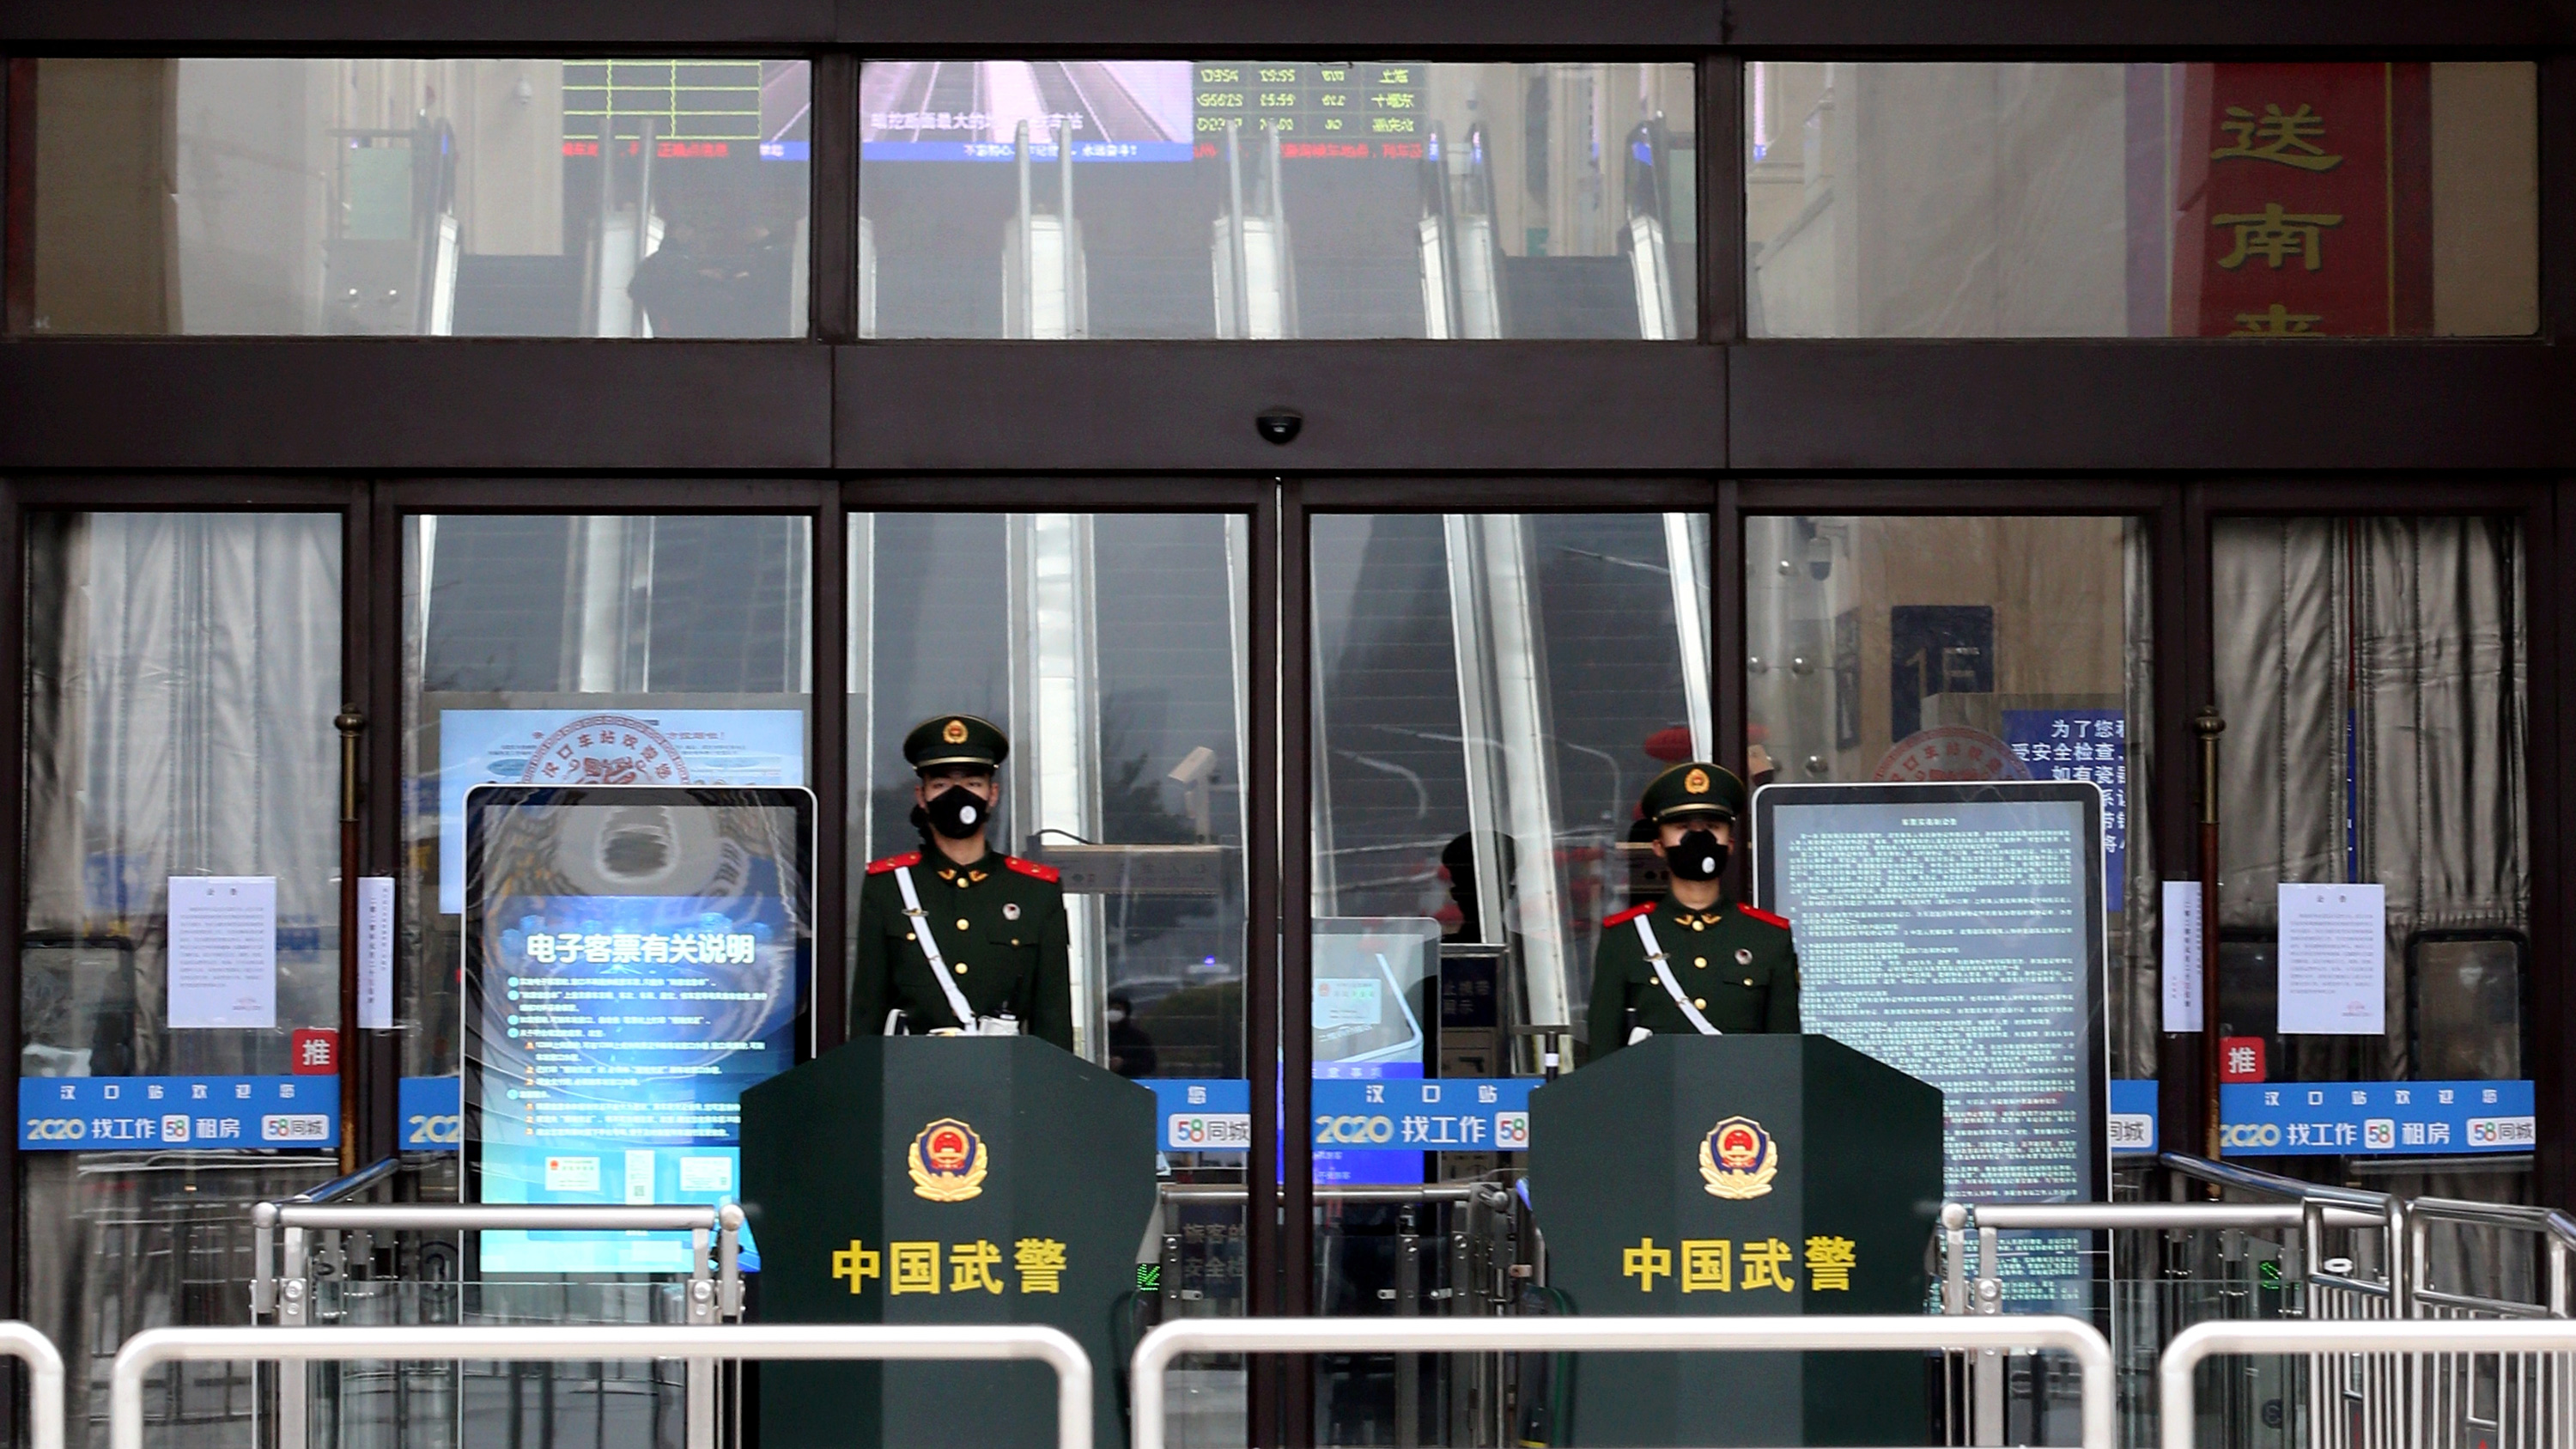 The photo shows the shuttered front of the grand entrance hall to the station with two soldiers wearing face masks out front.